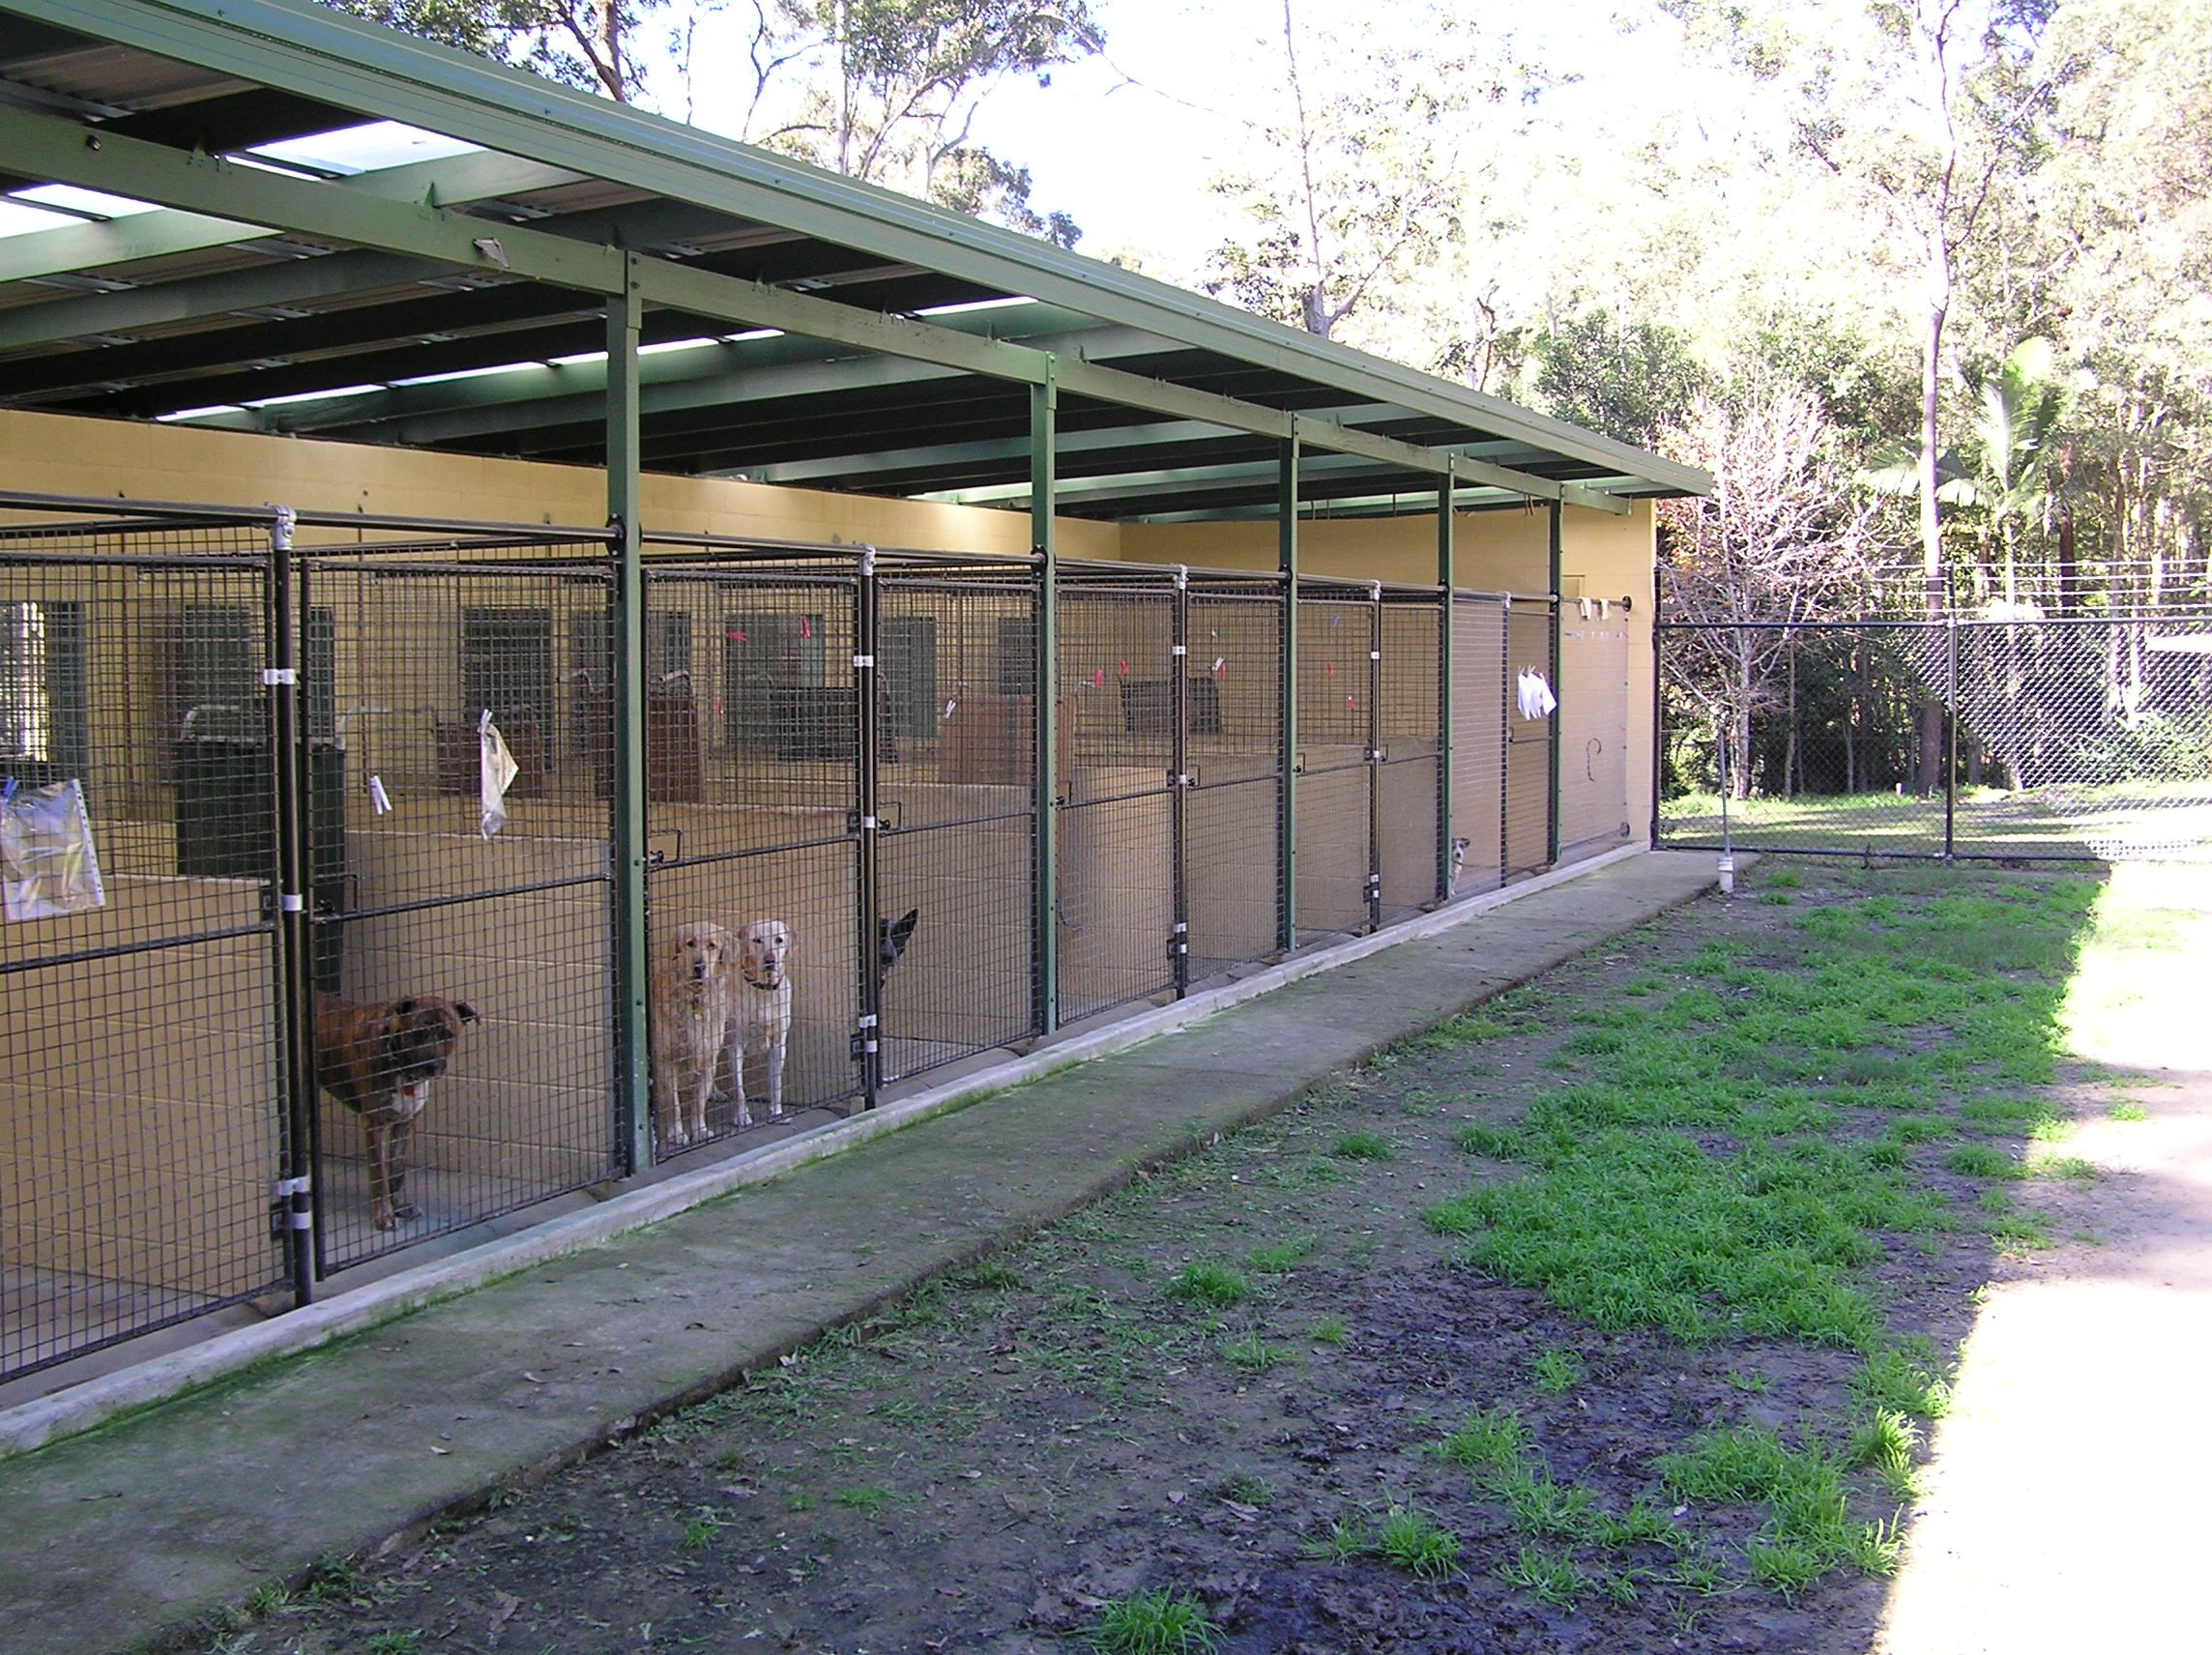 Best dog kennel designs stafford boarding kennel for Puppy dog kennels